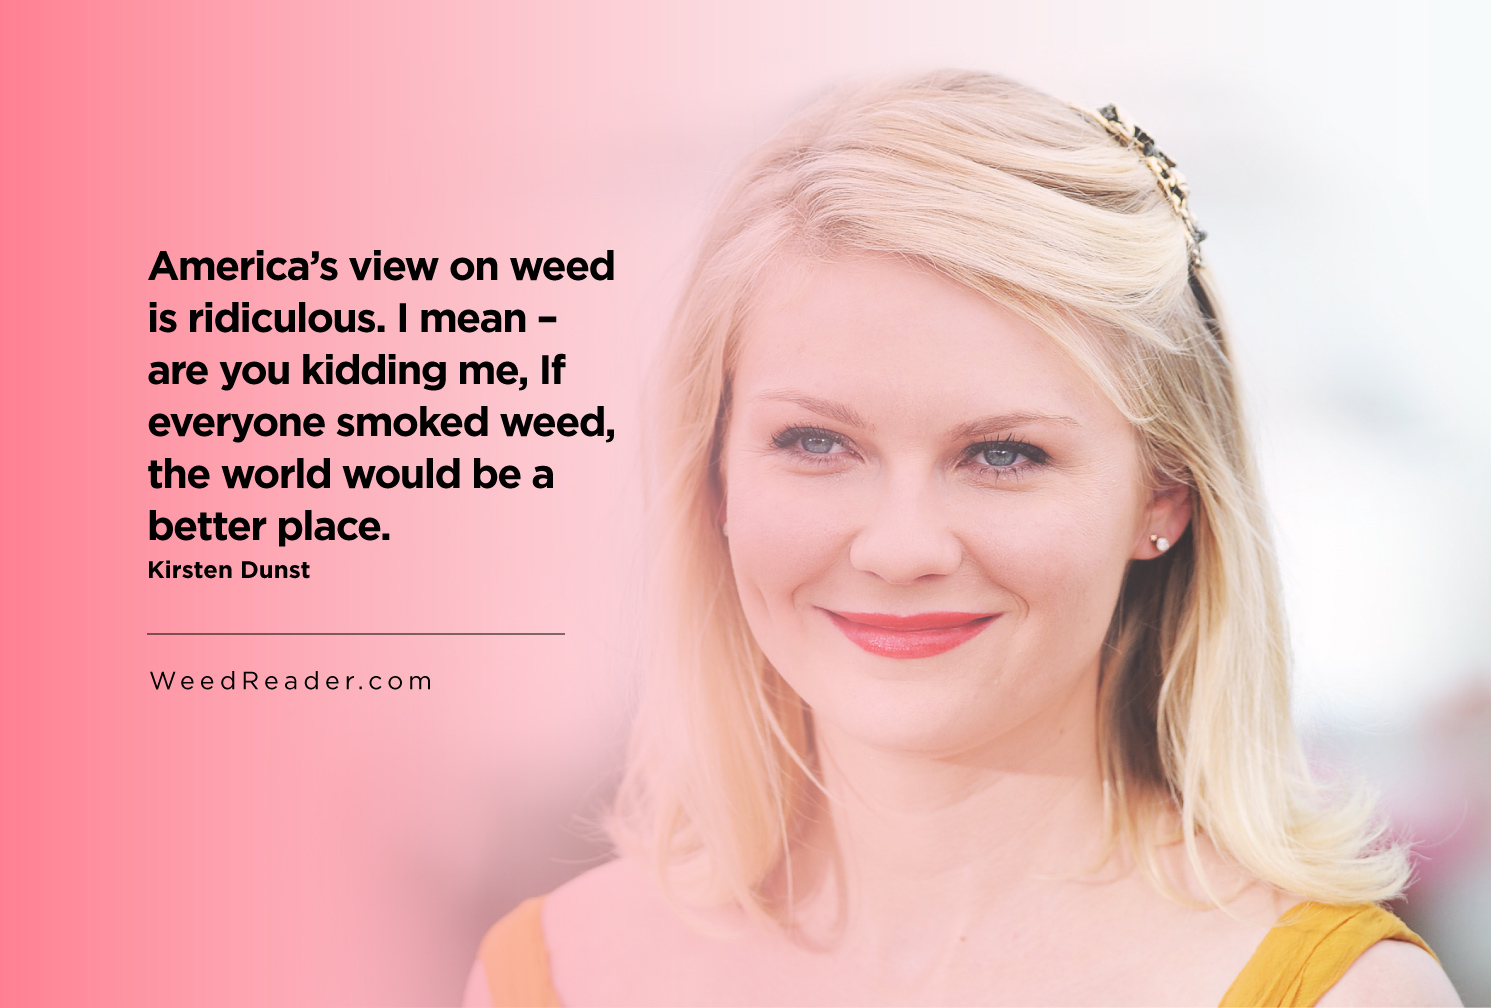 If everyone smoked weed, the world would be a better place.